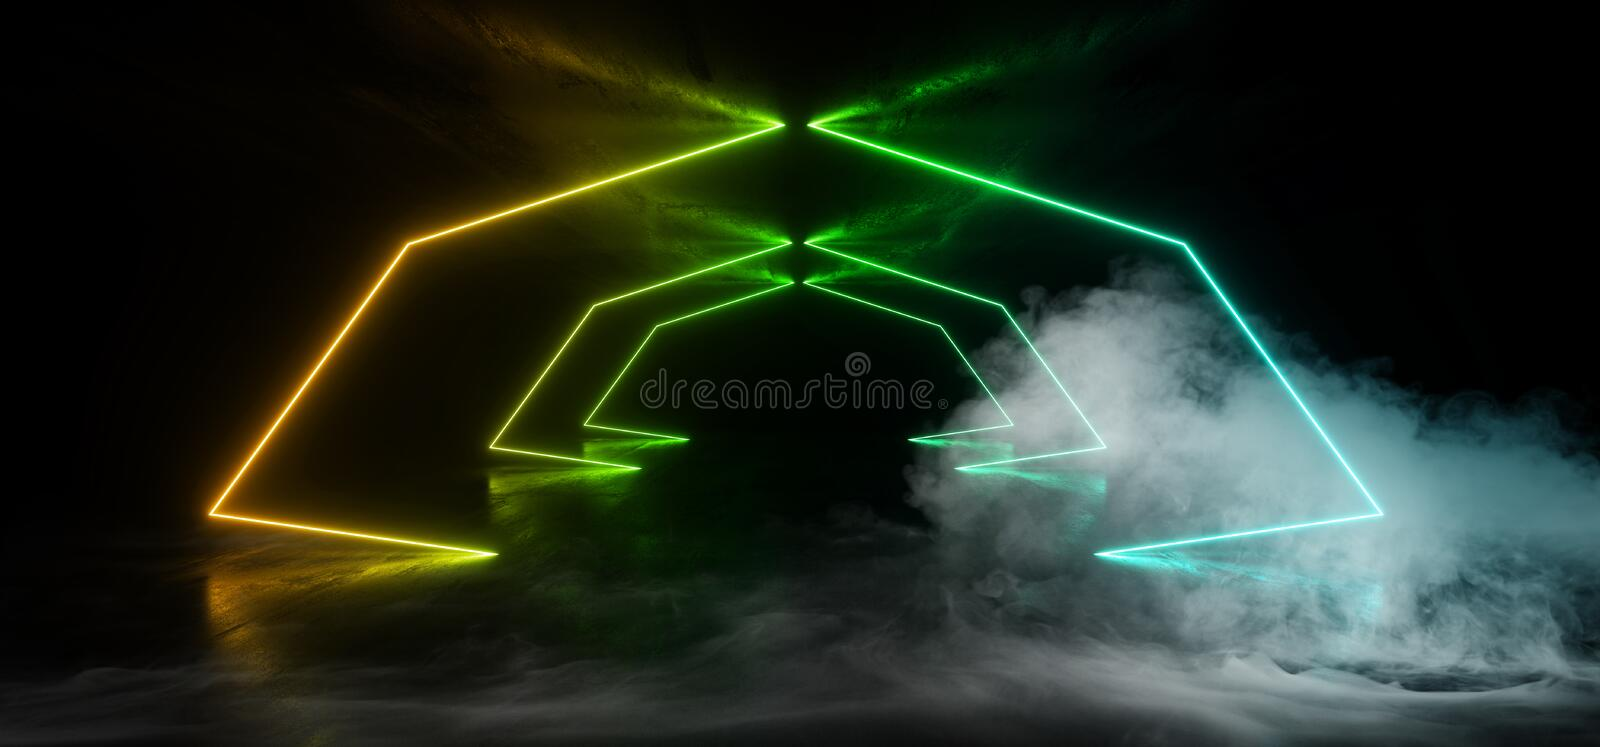 Smoke Stage Neon Construction Laser Show Glowing Blue Green Orange Lights Vibrant Reflective Dark Concrete Grunge Underground Club stock illustration